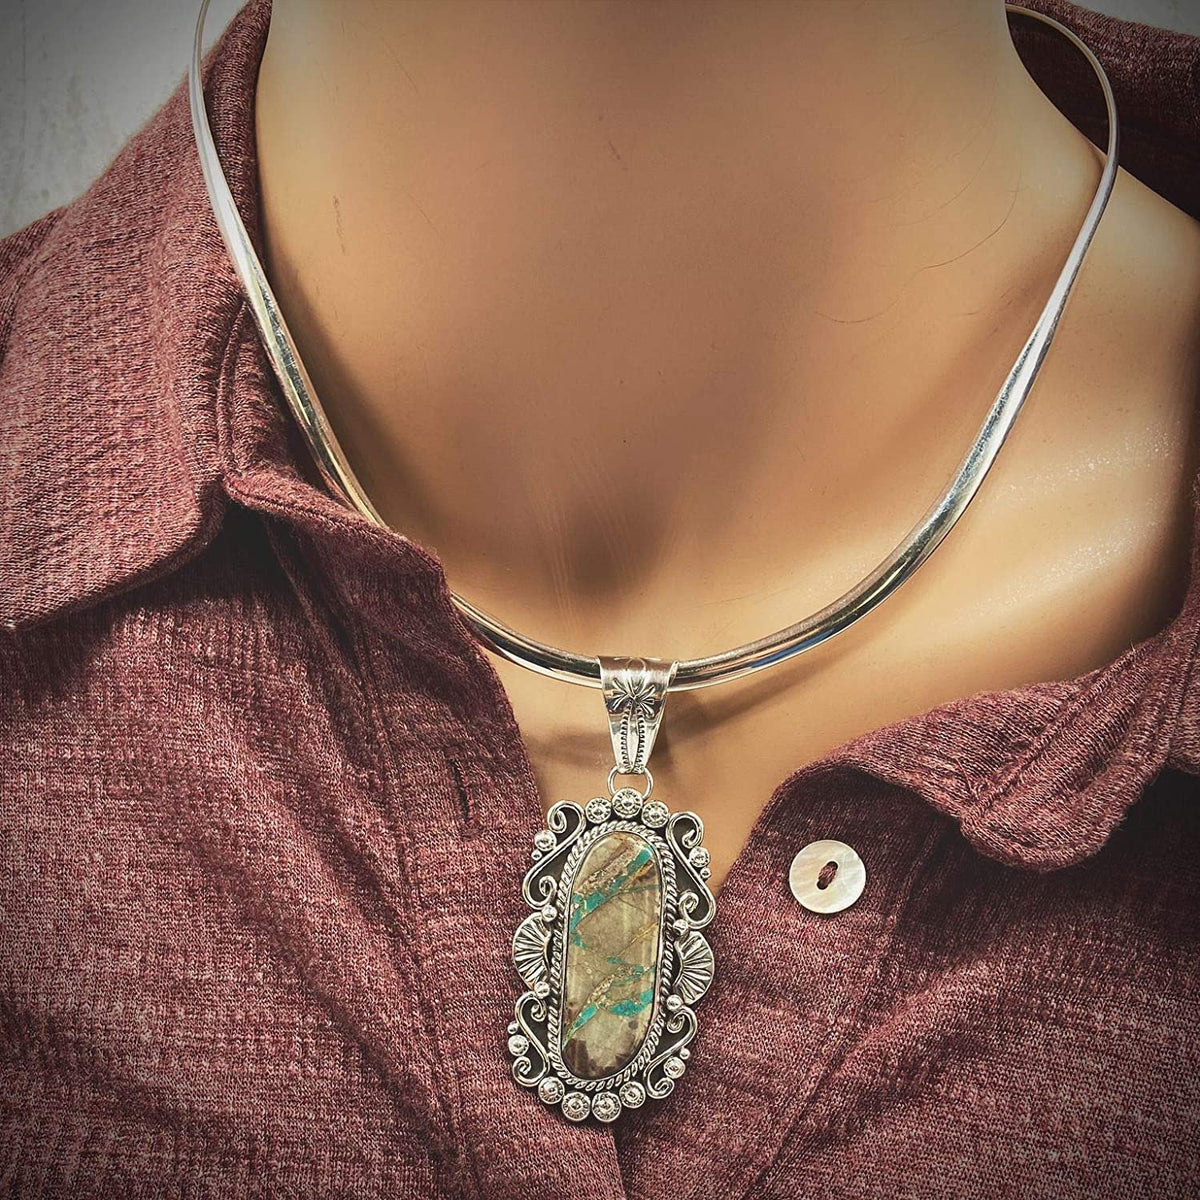 Genuine Royston Ribbon Turquoise Pendant, Navajo Native American USA Handmade, 925 Sterling Silver, Artist Signed, Natural Stone, Nickel Free